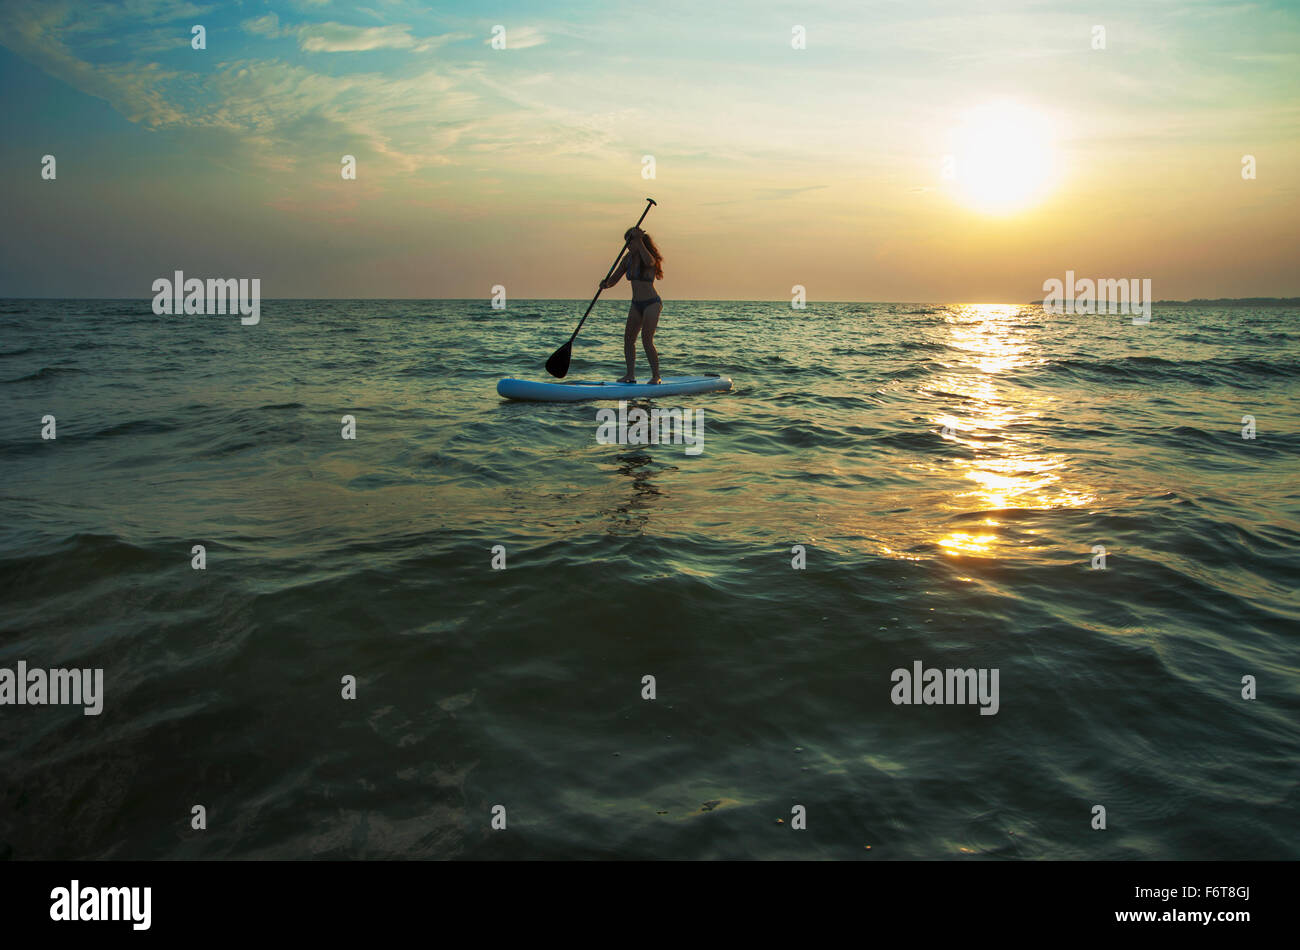 Woman standing on paddleboard in lake - Stock Image